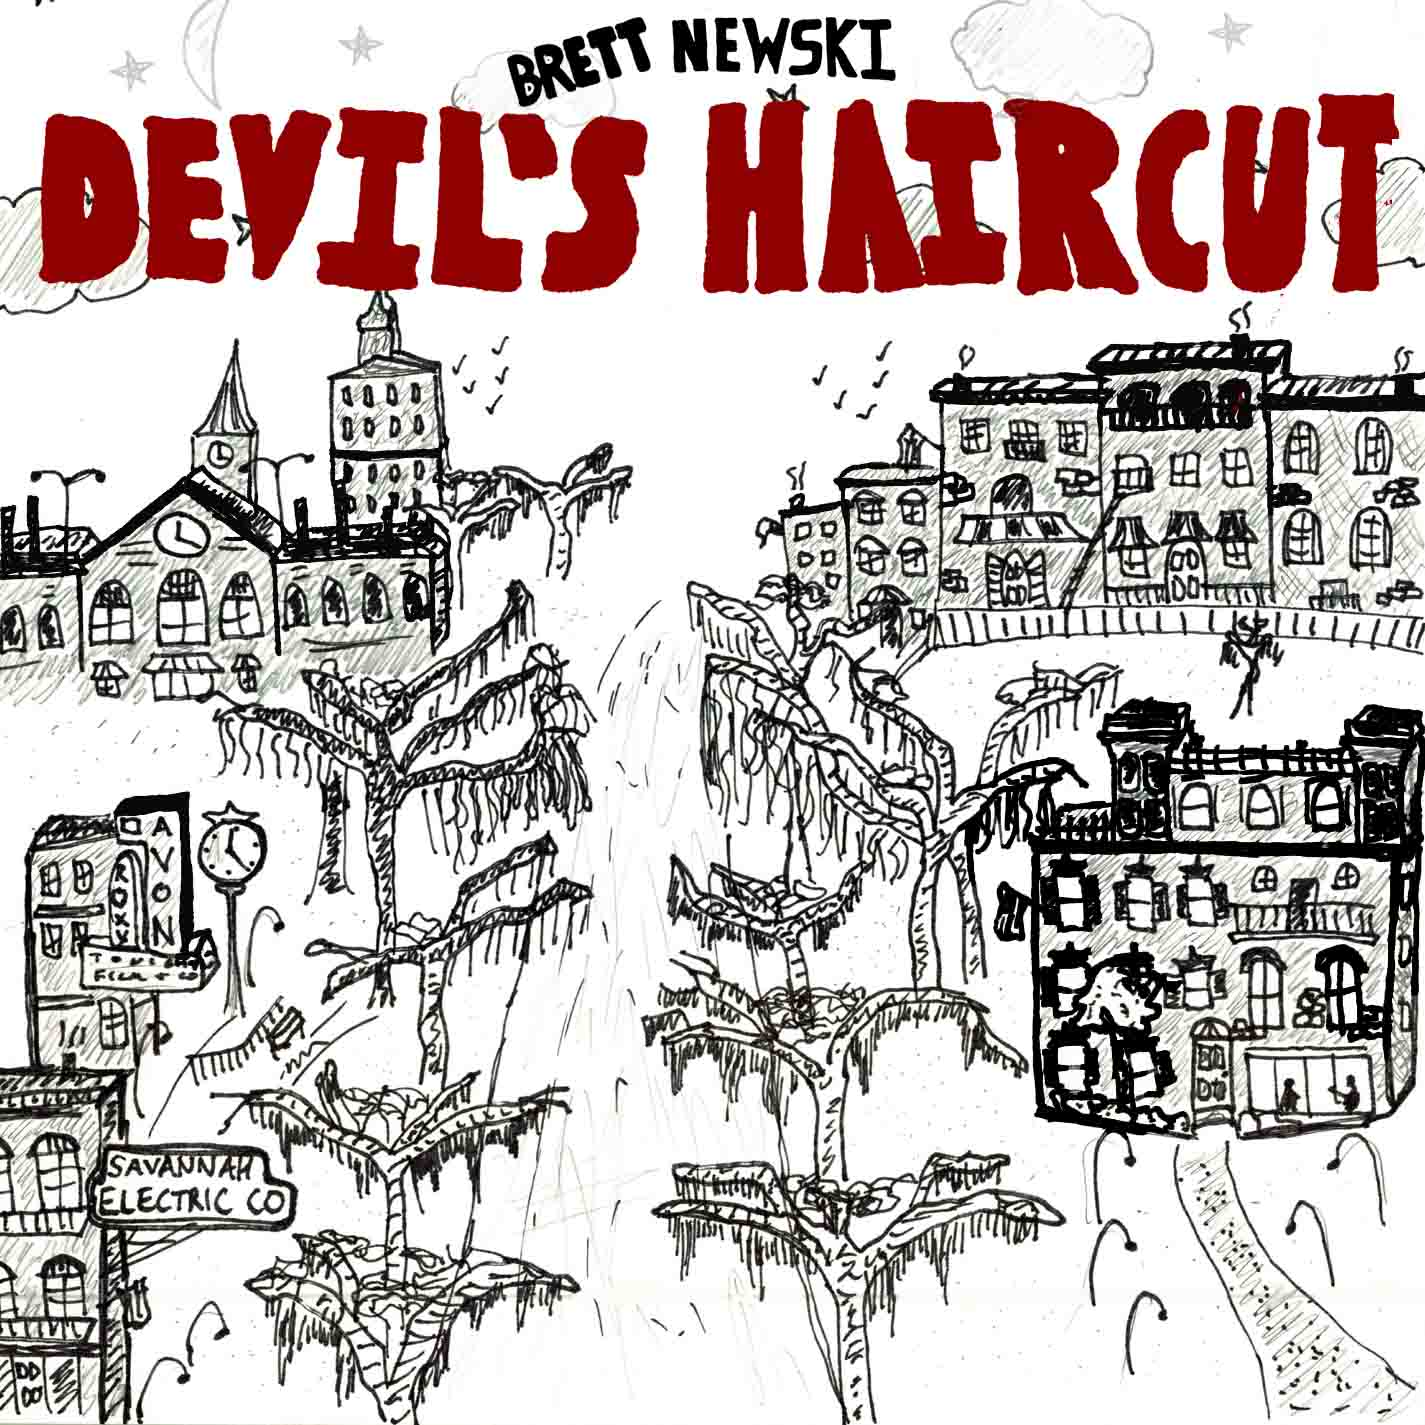 Devils Haircut Savannah v2.0 small.jpg